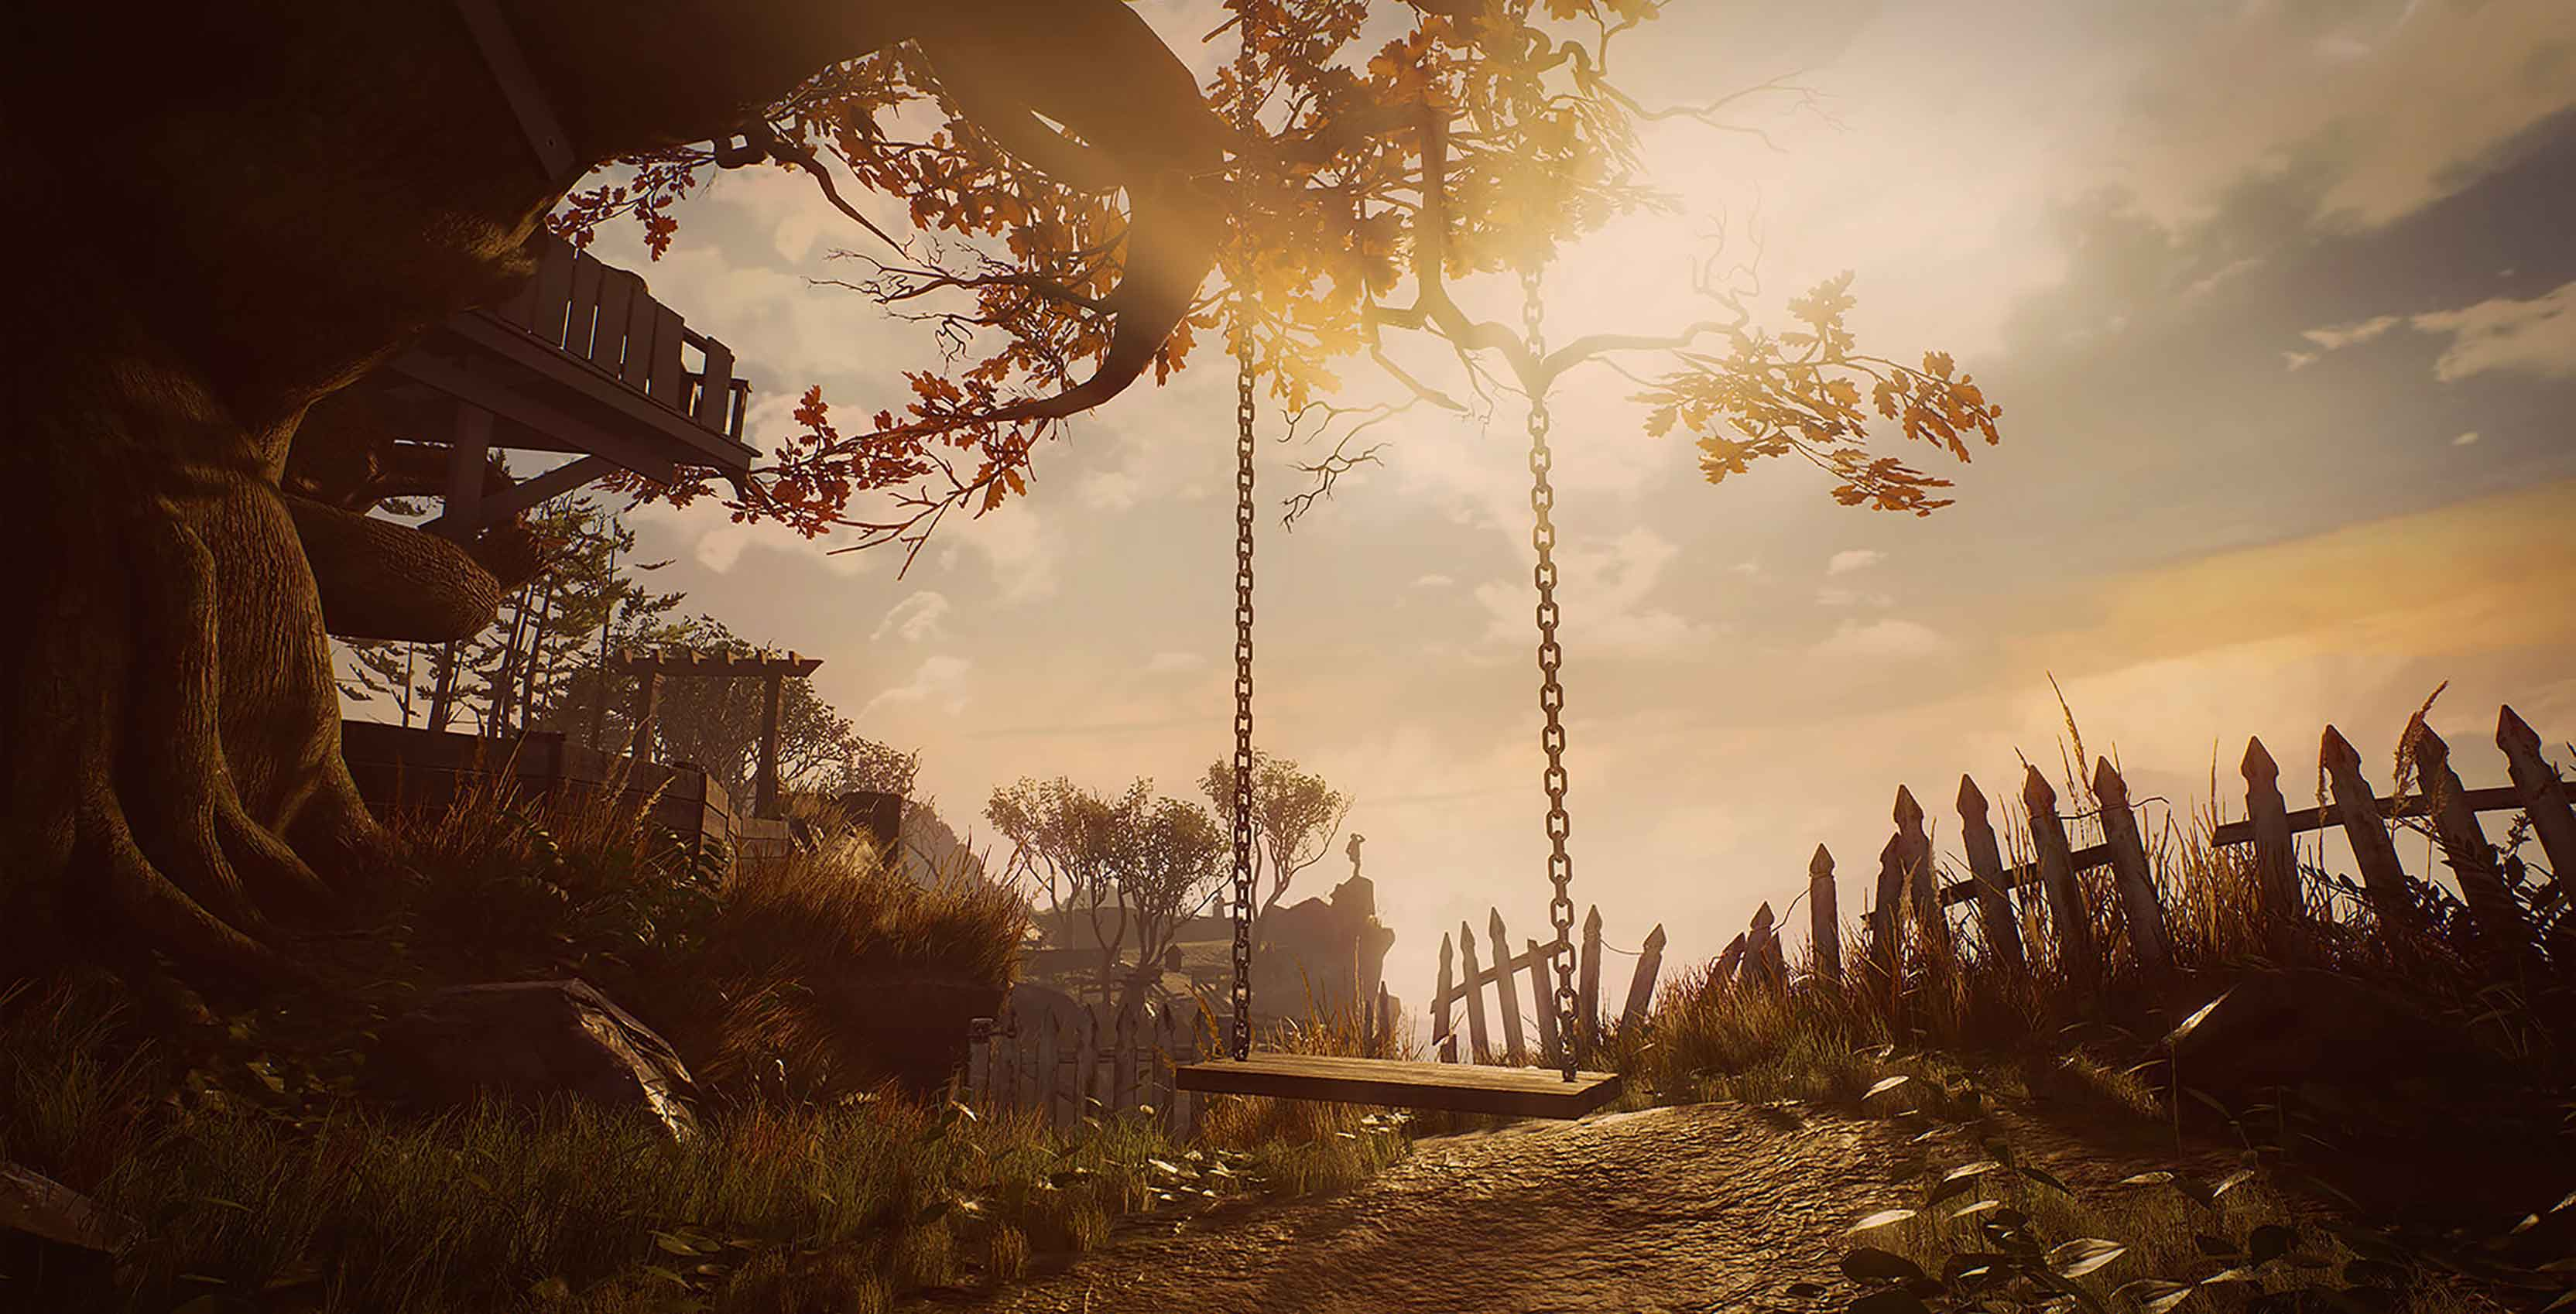 What Remains of Edith Finch swing set